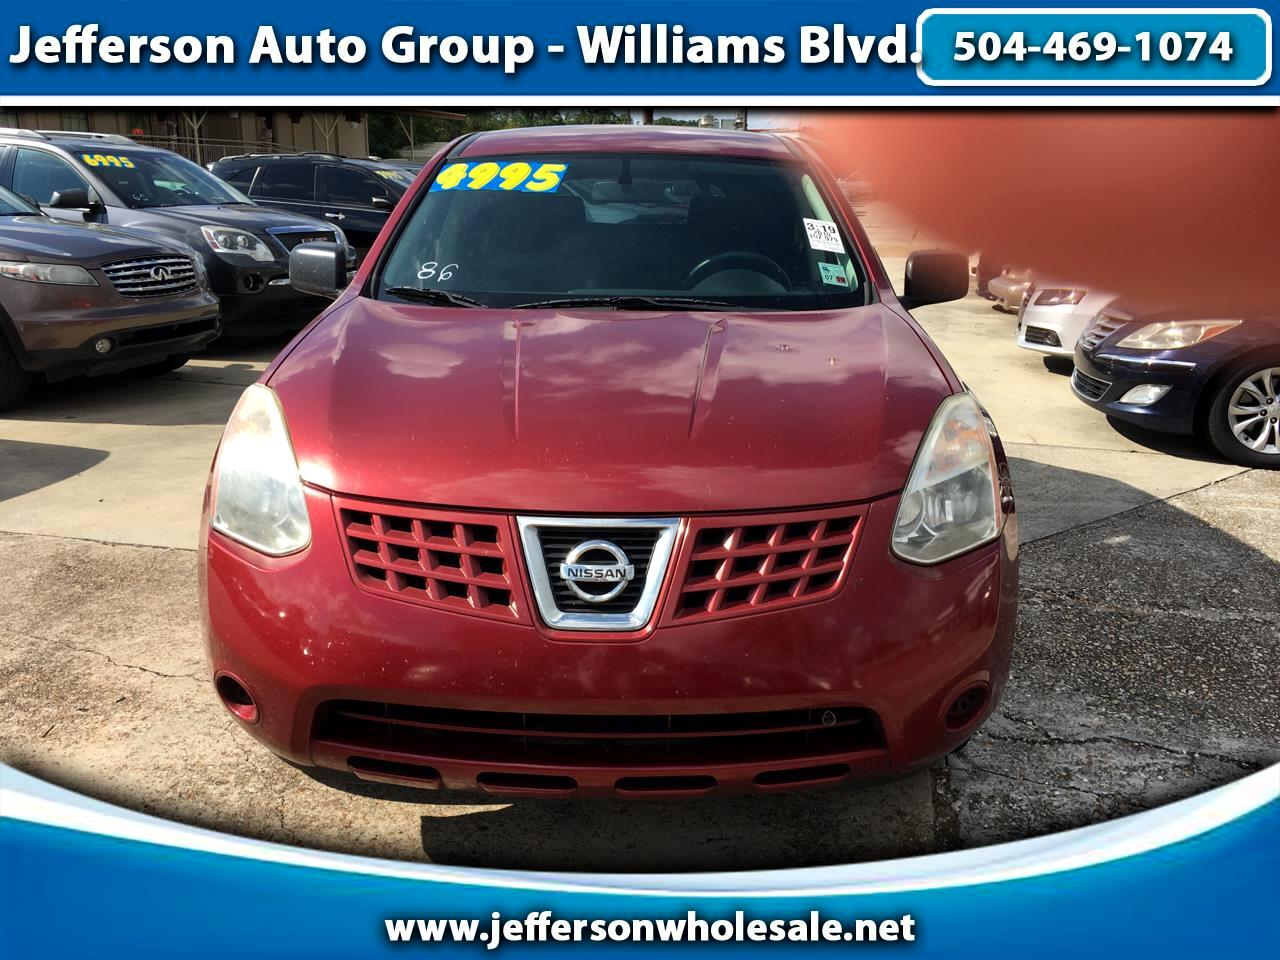 2010 Nissan Rogue FWD 4dr S